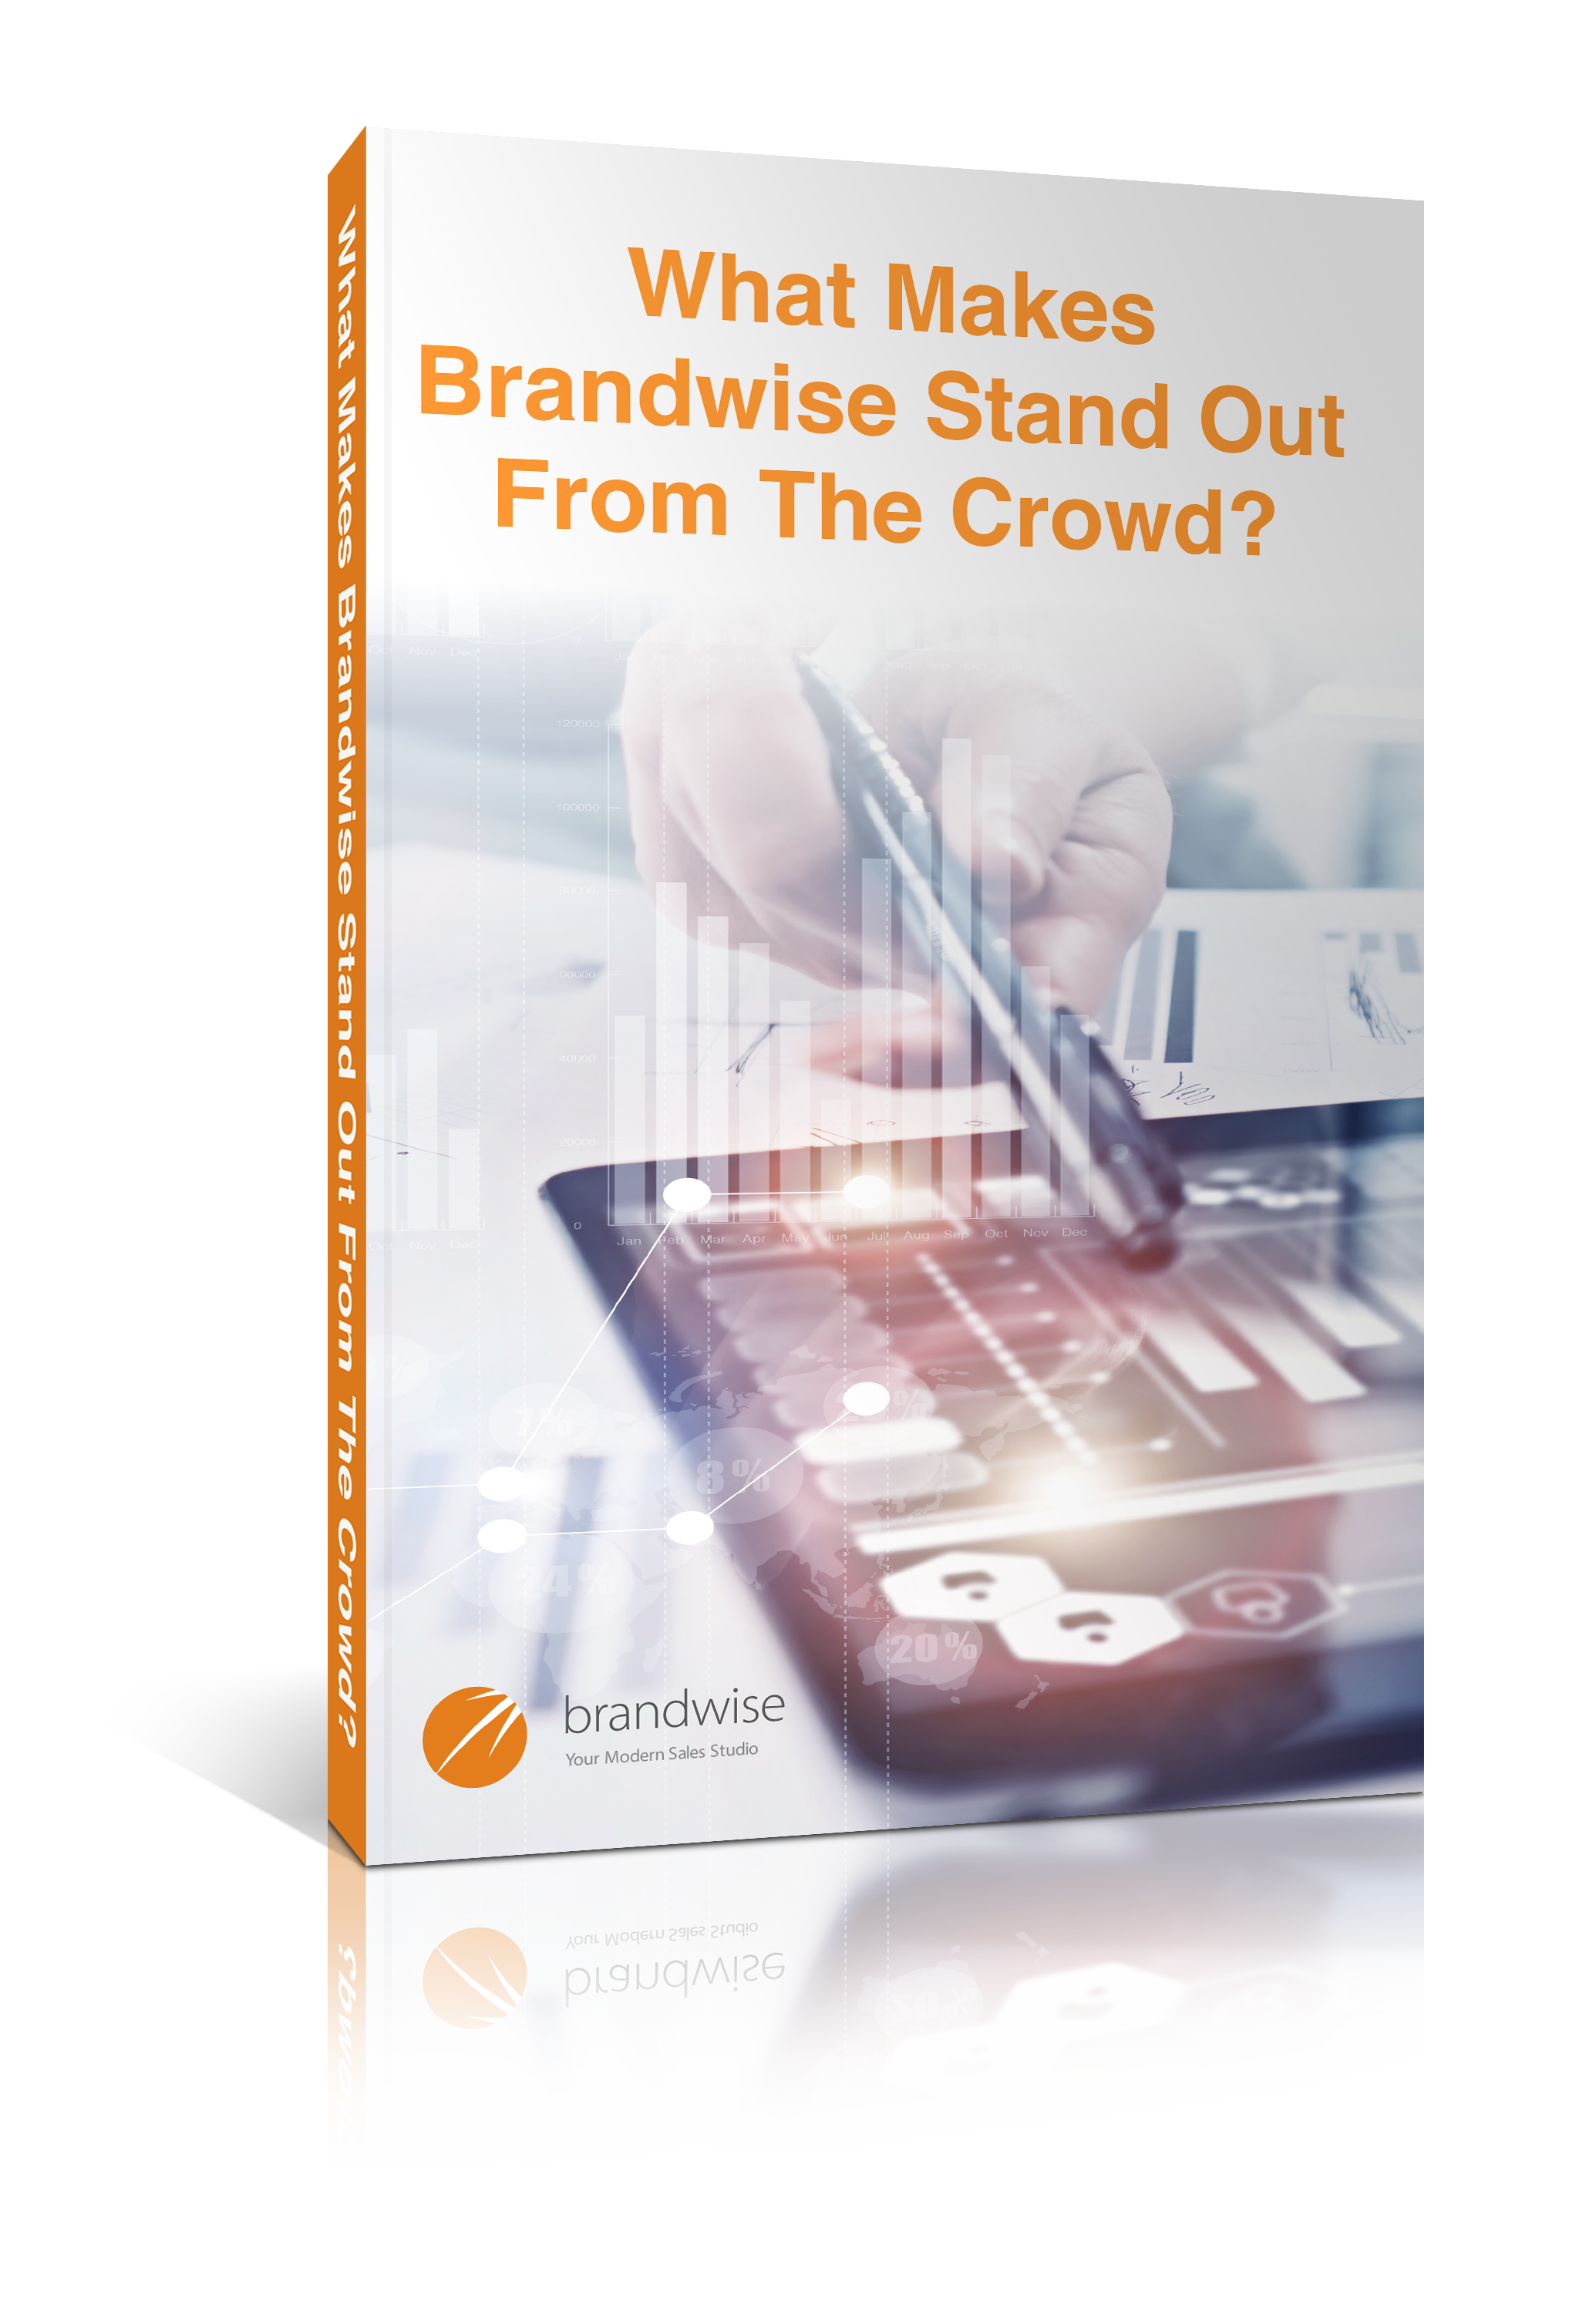 Brandwise and Responsive Inbound Marketing